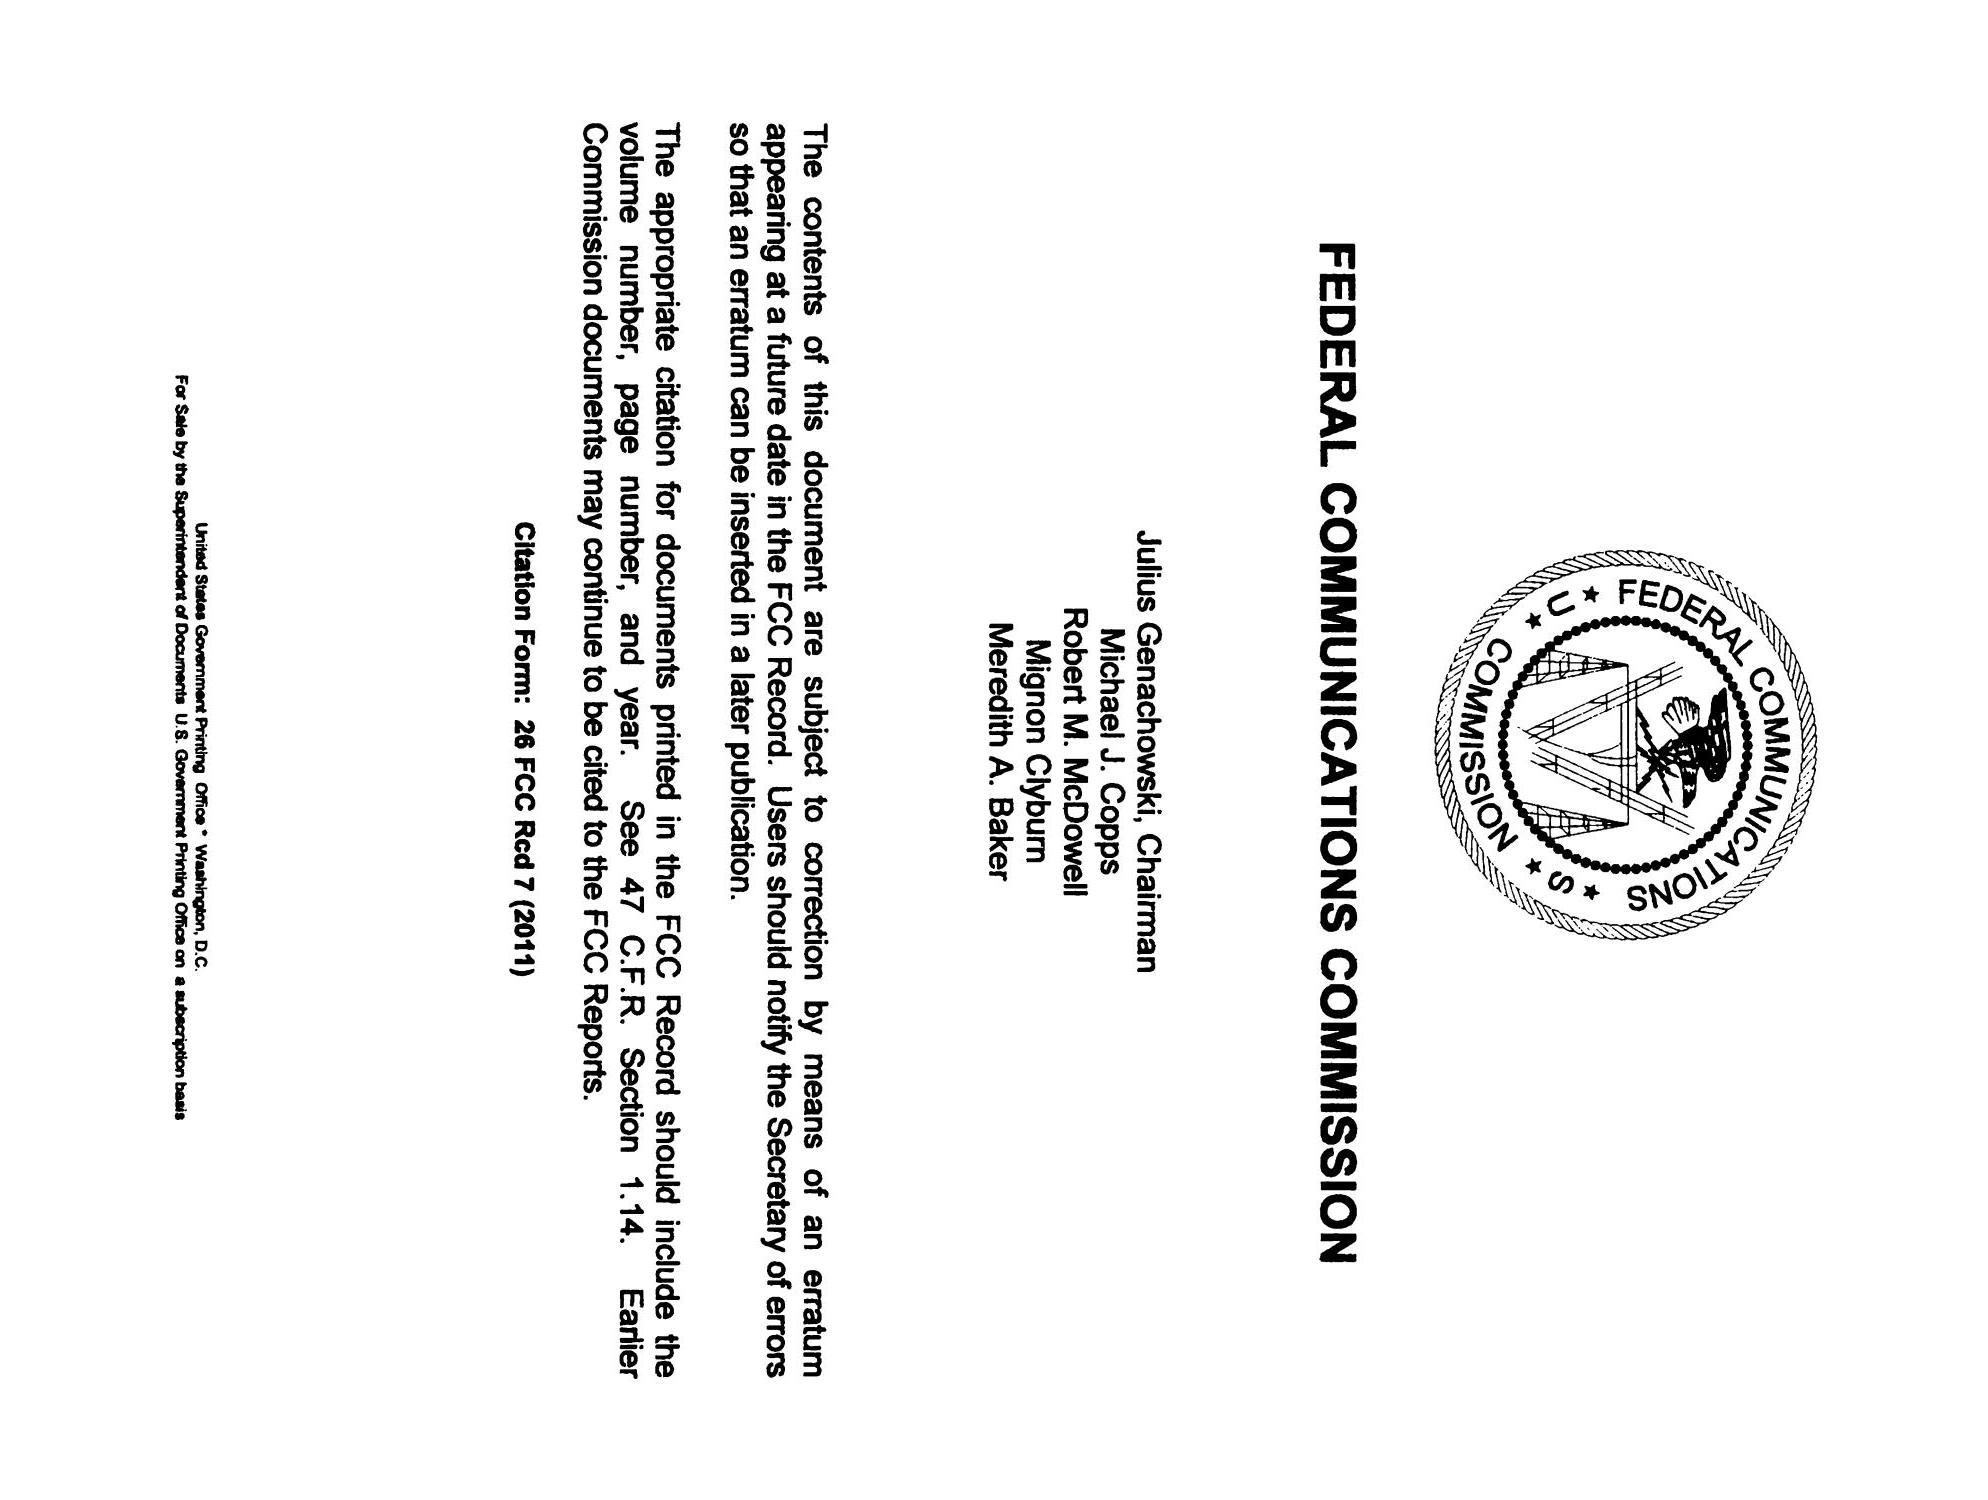 FCC Record, Volume 26, No. 7, Pages 4843 to 5761, March 28 - April 08, 2011                                                                                                      None